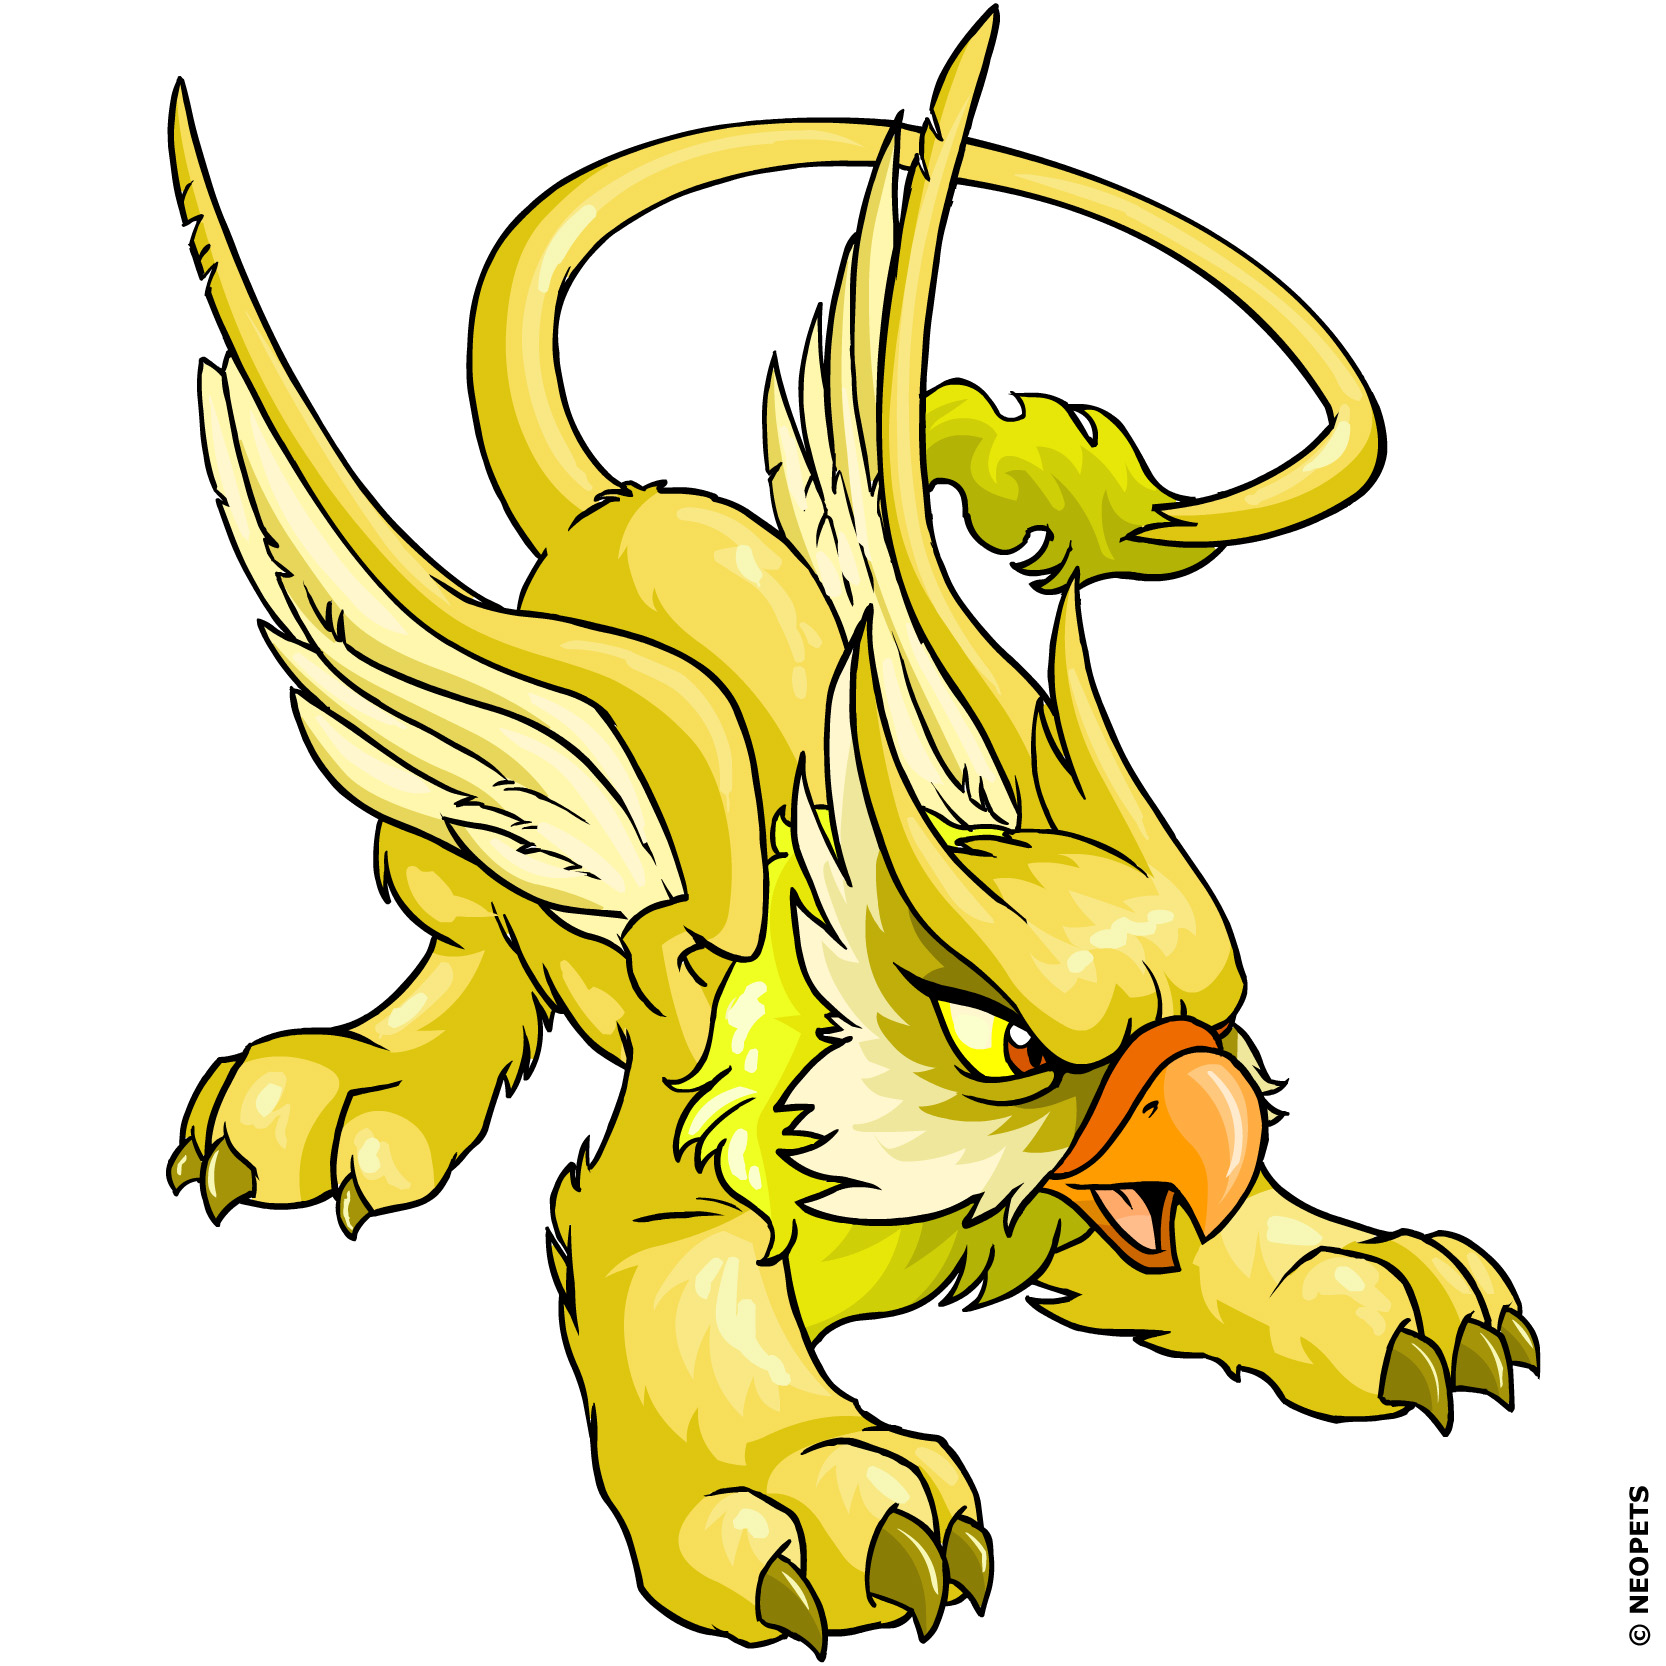 http://images.neopets.com/press/eyrie_6.jpg